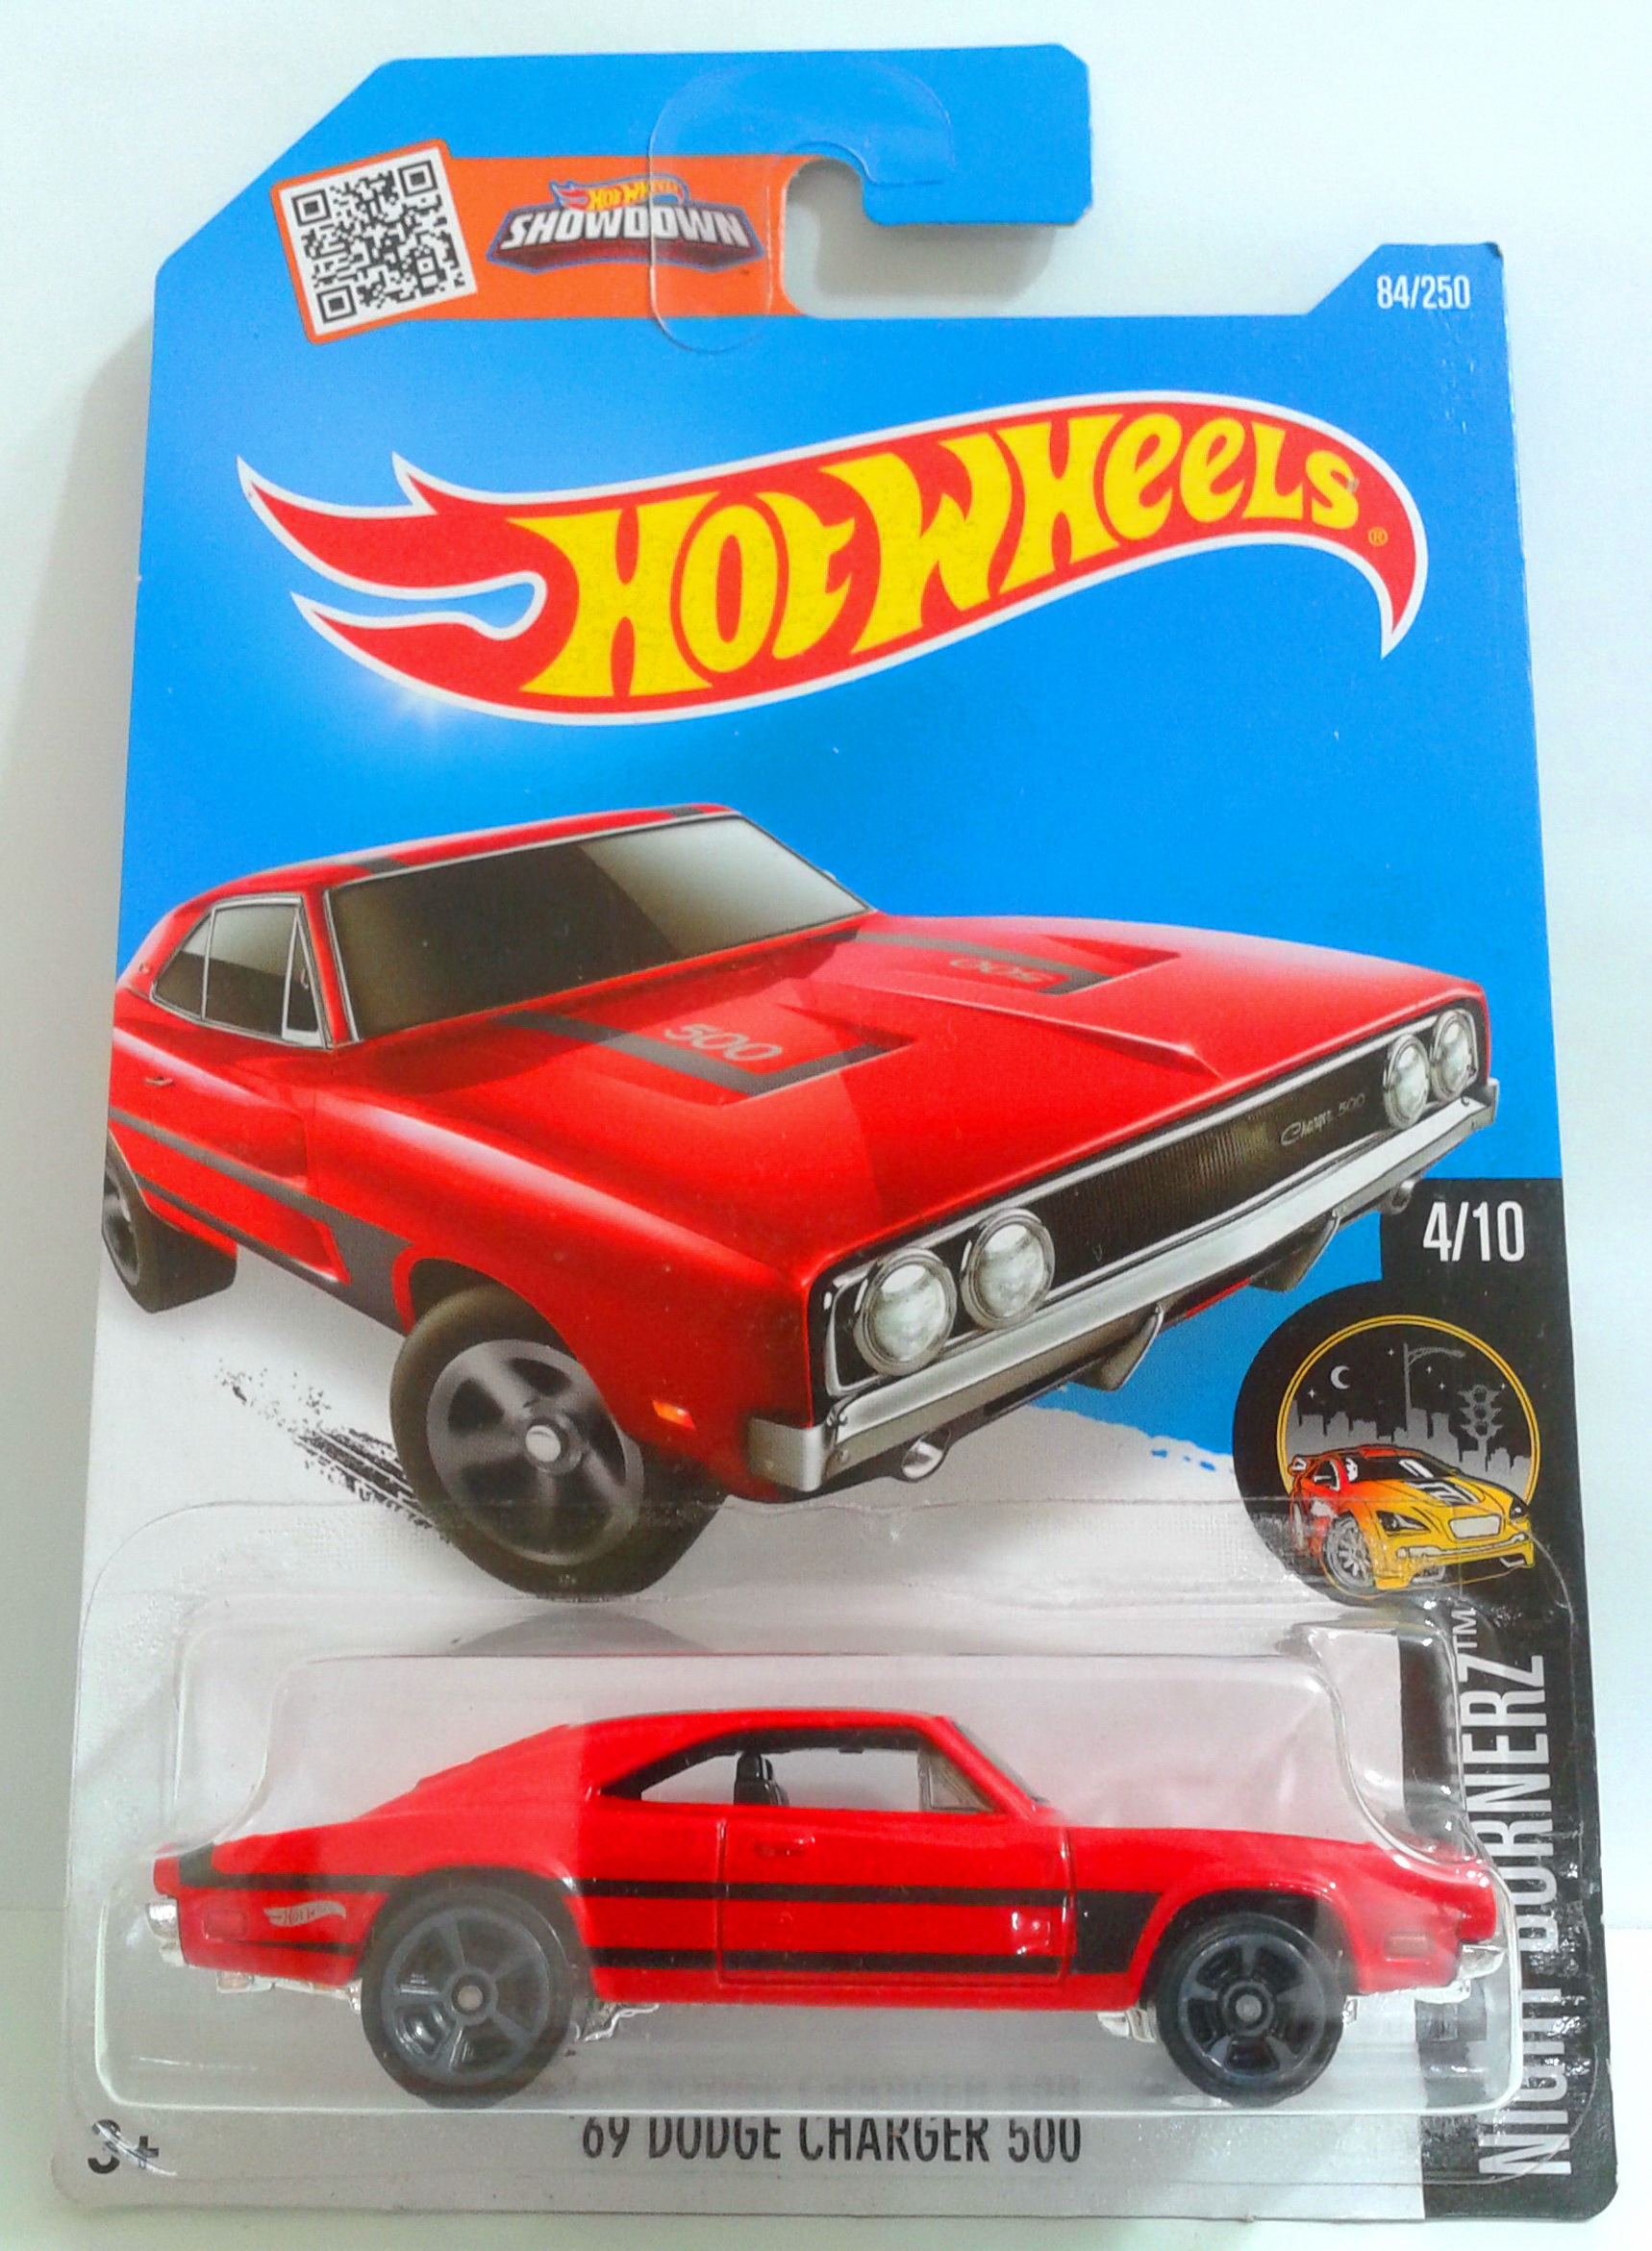 '69 Dodge Charger 500